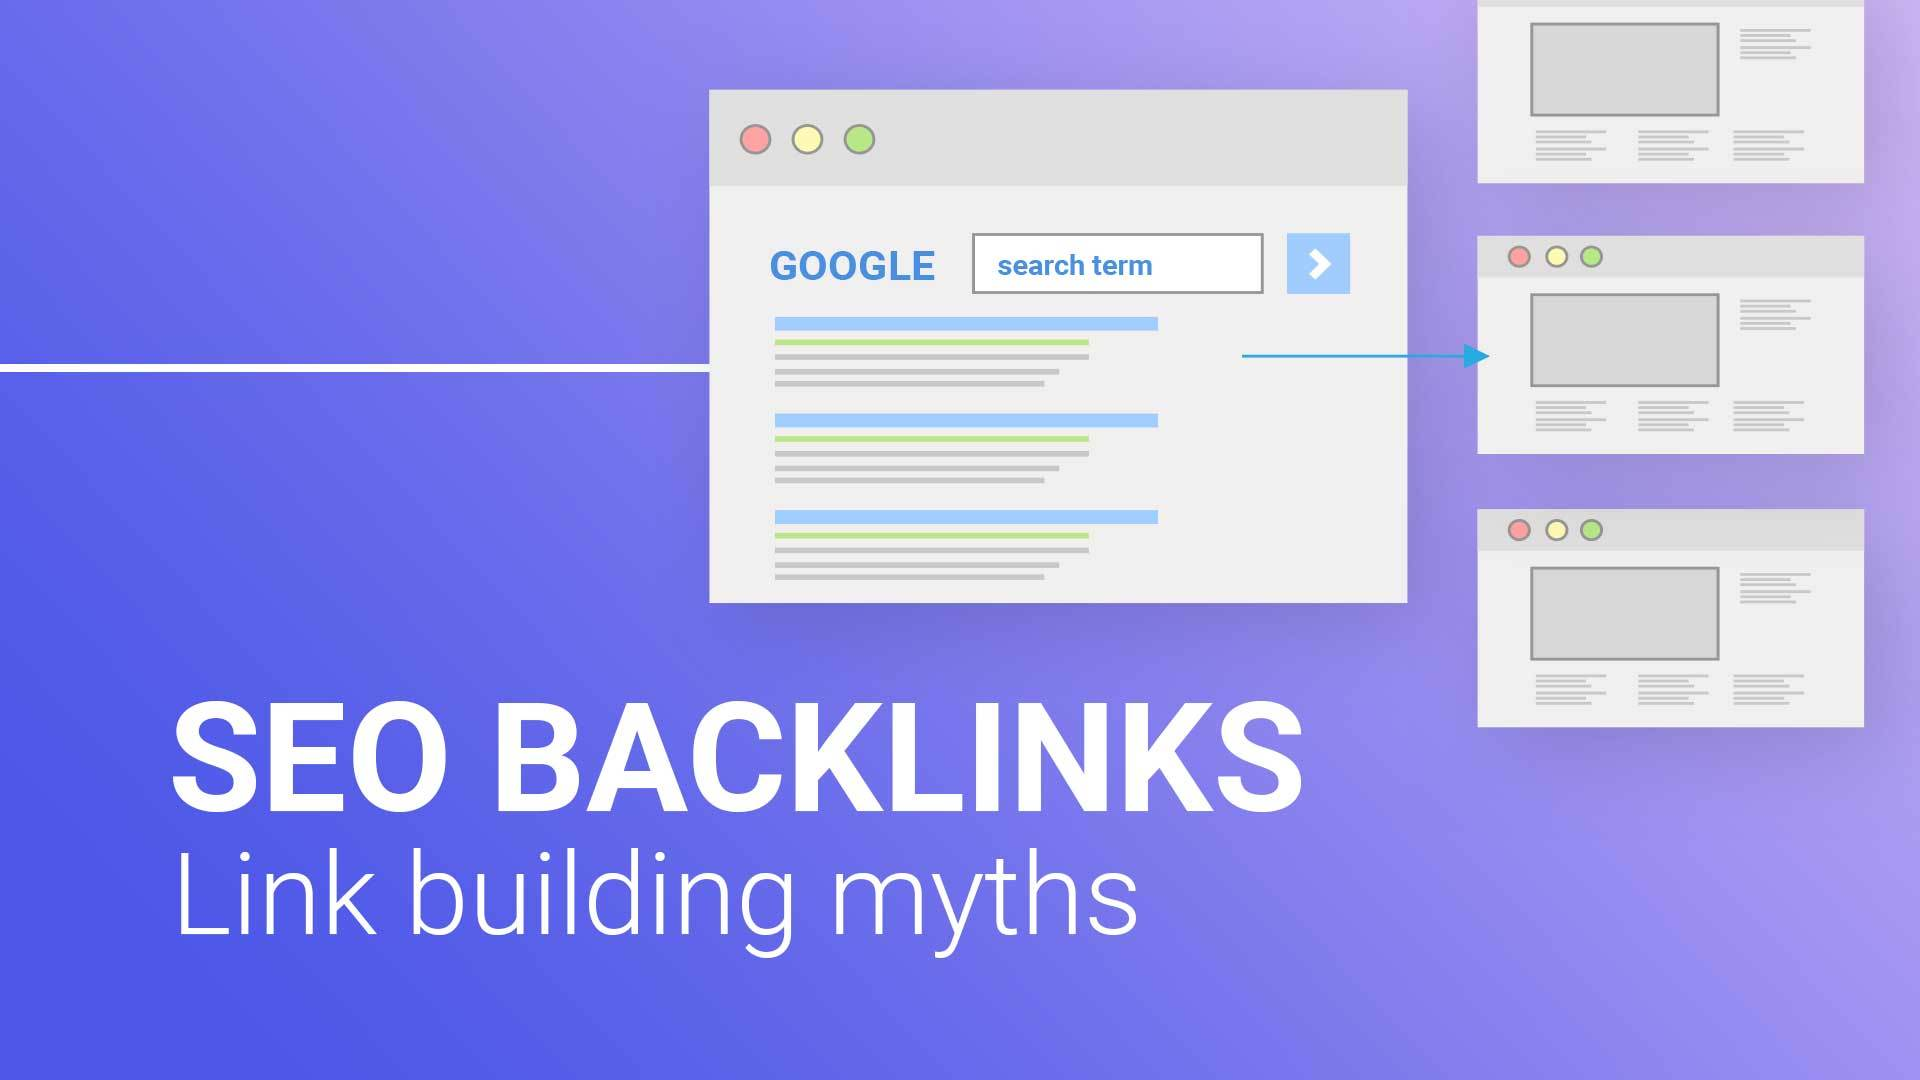 seo backlink myths